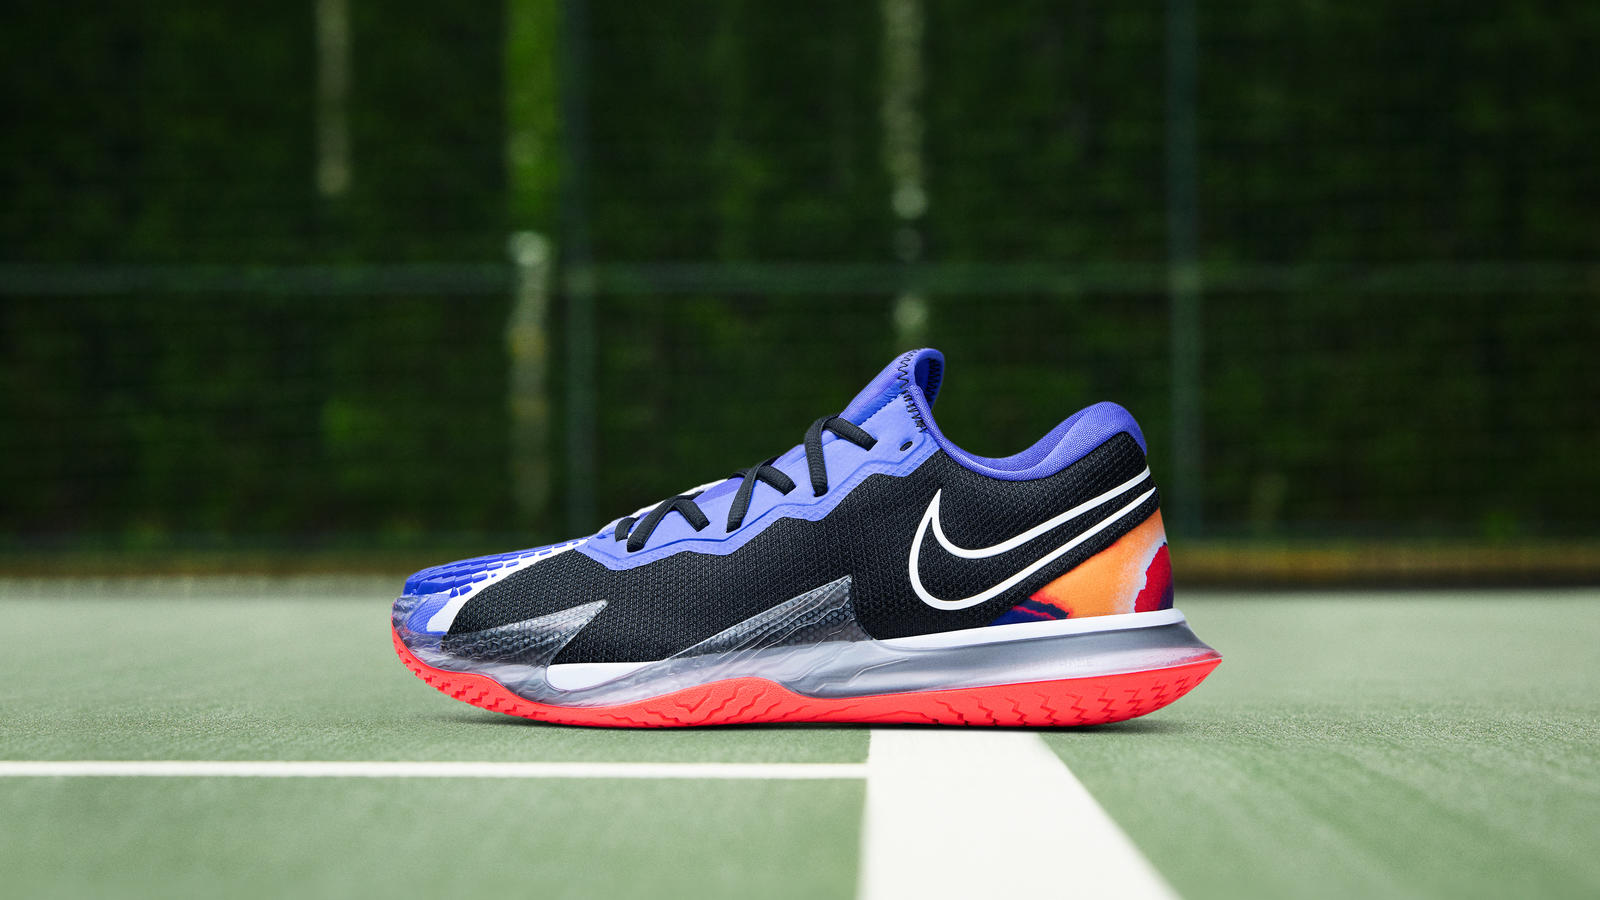 nikecourt-zoom-vapor-cage-4-official-images-and-release-date